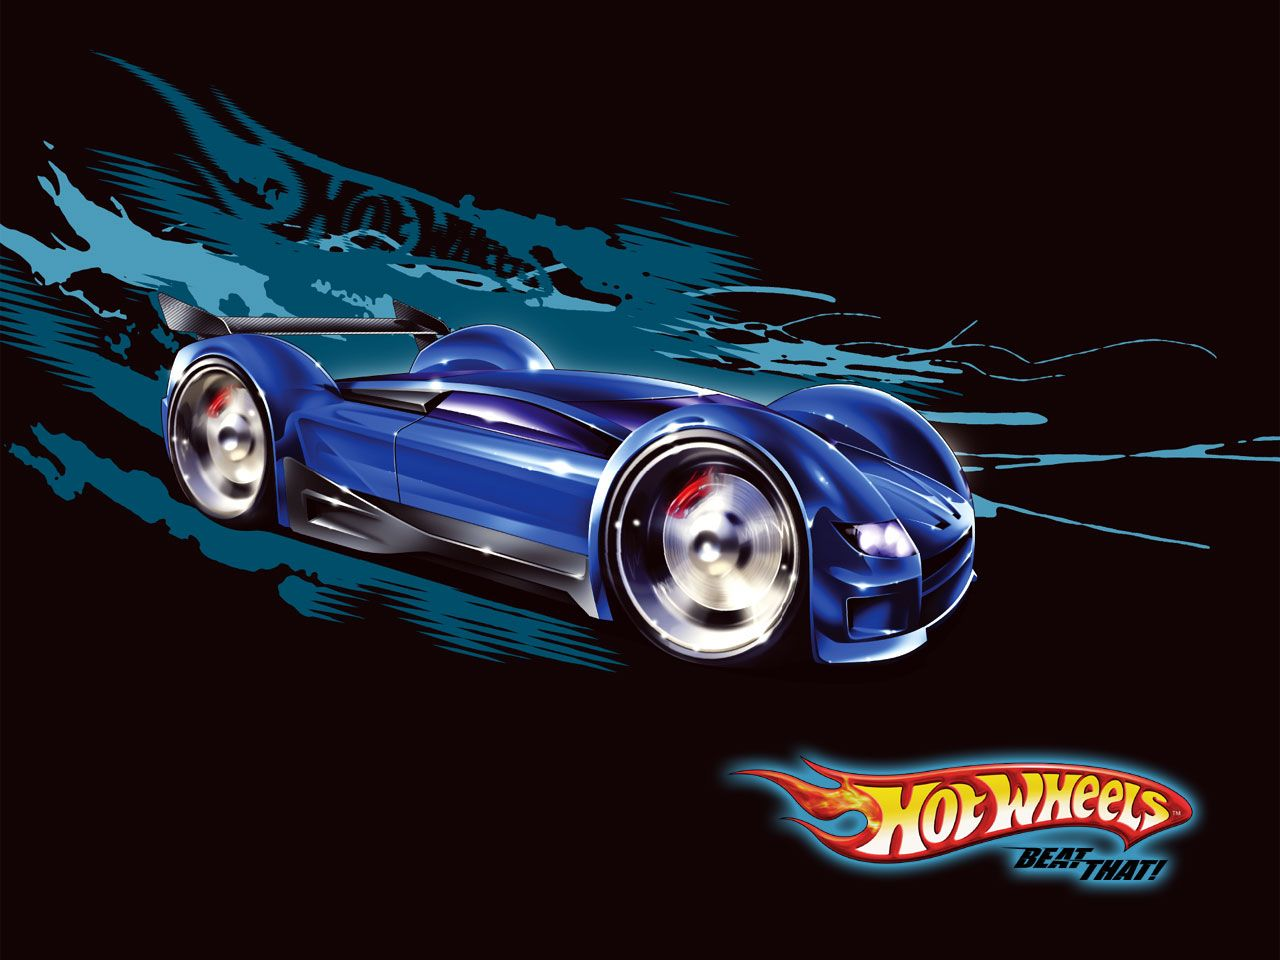 Hot Wheels Cars Wallpapers Top Free Hot Wheels Cars Backgrounds Wallpaperaccess